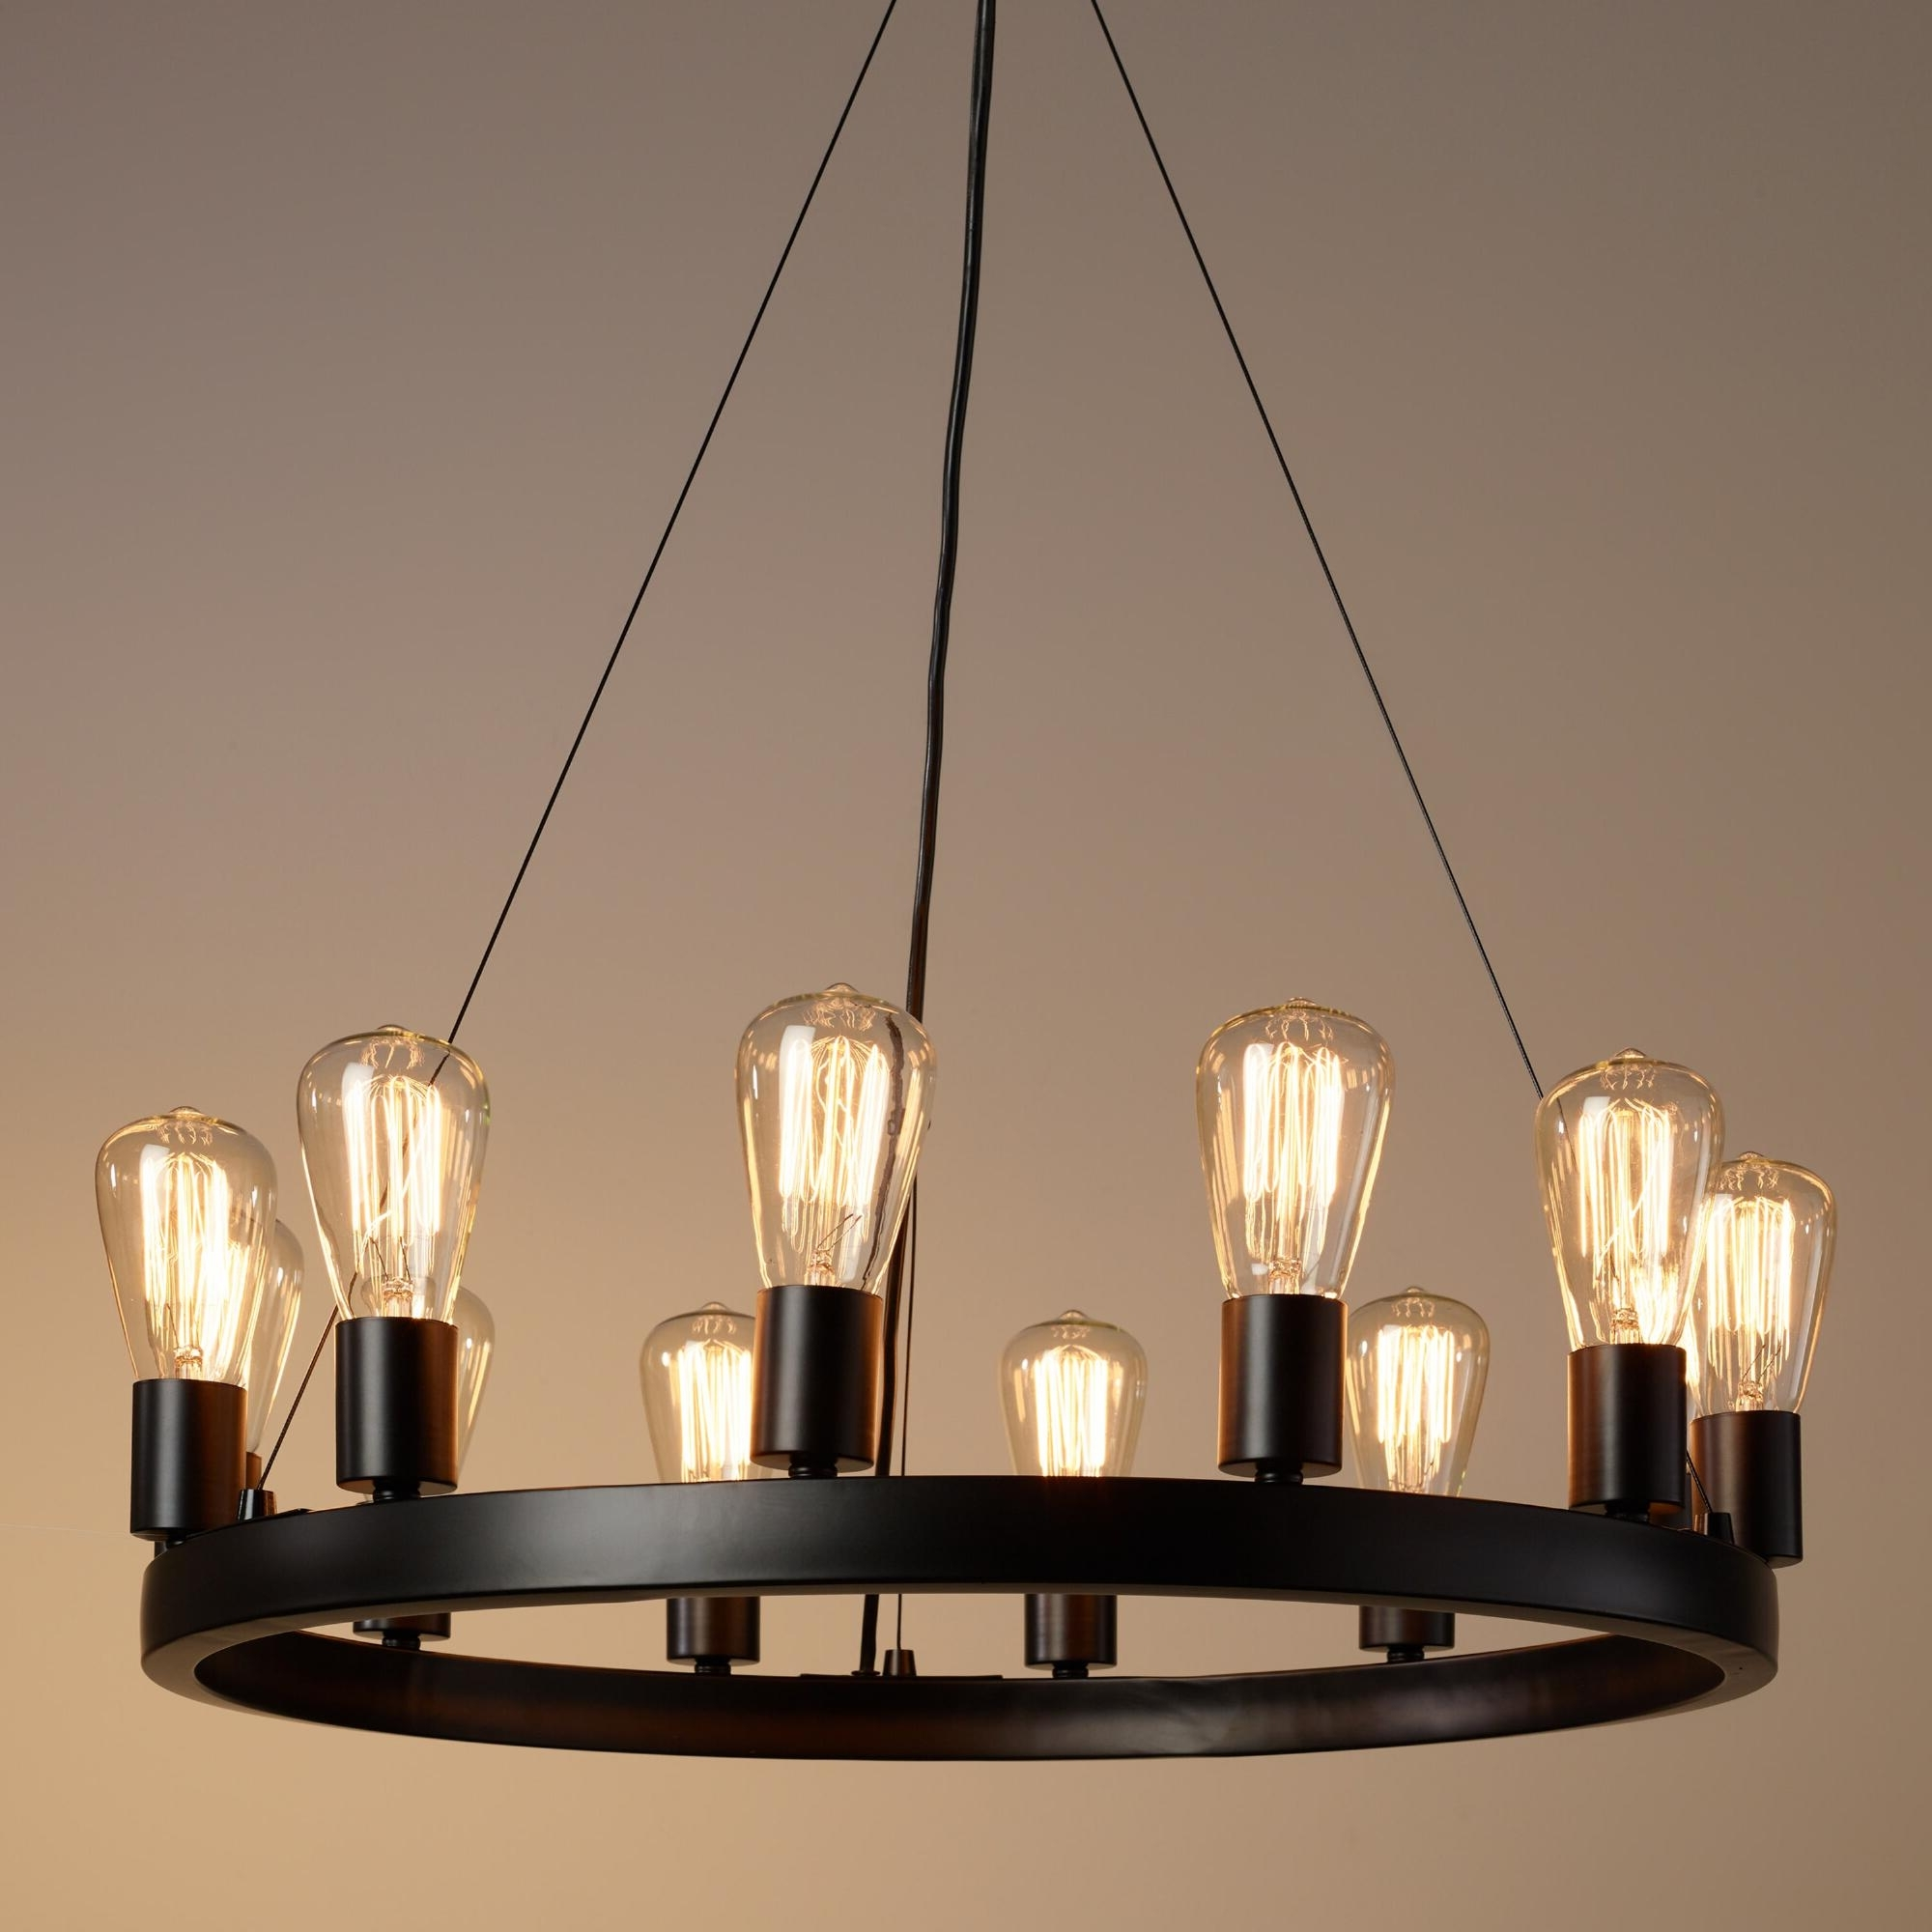 Popular Light : Amazing Round Light Edison Bulb Chandelier With Additional Intended For Small Rustic Chandeliers (View 11 of 15)